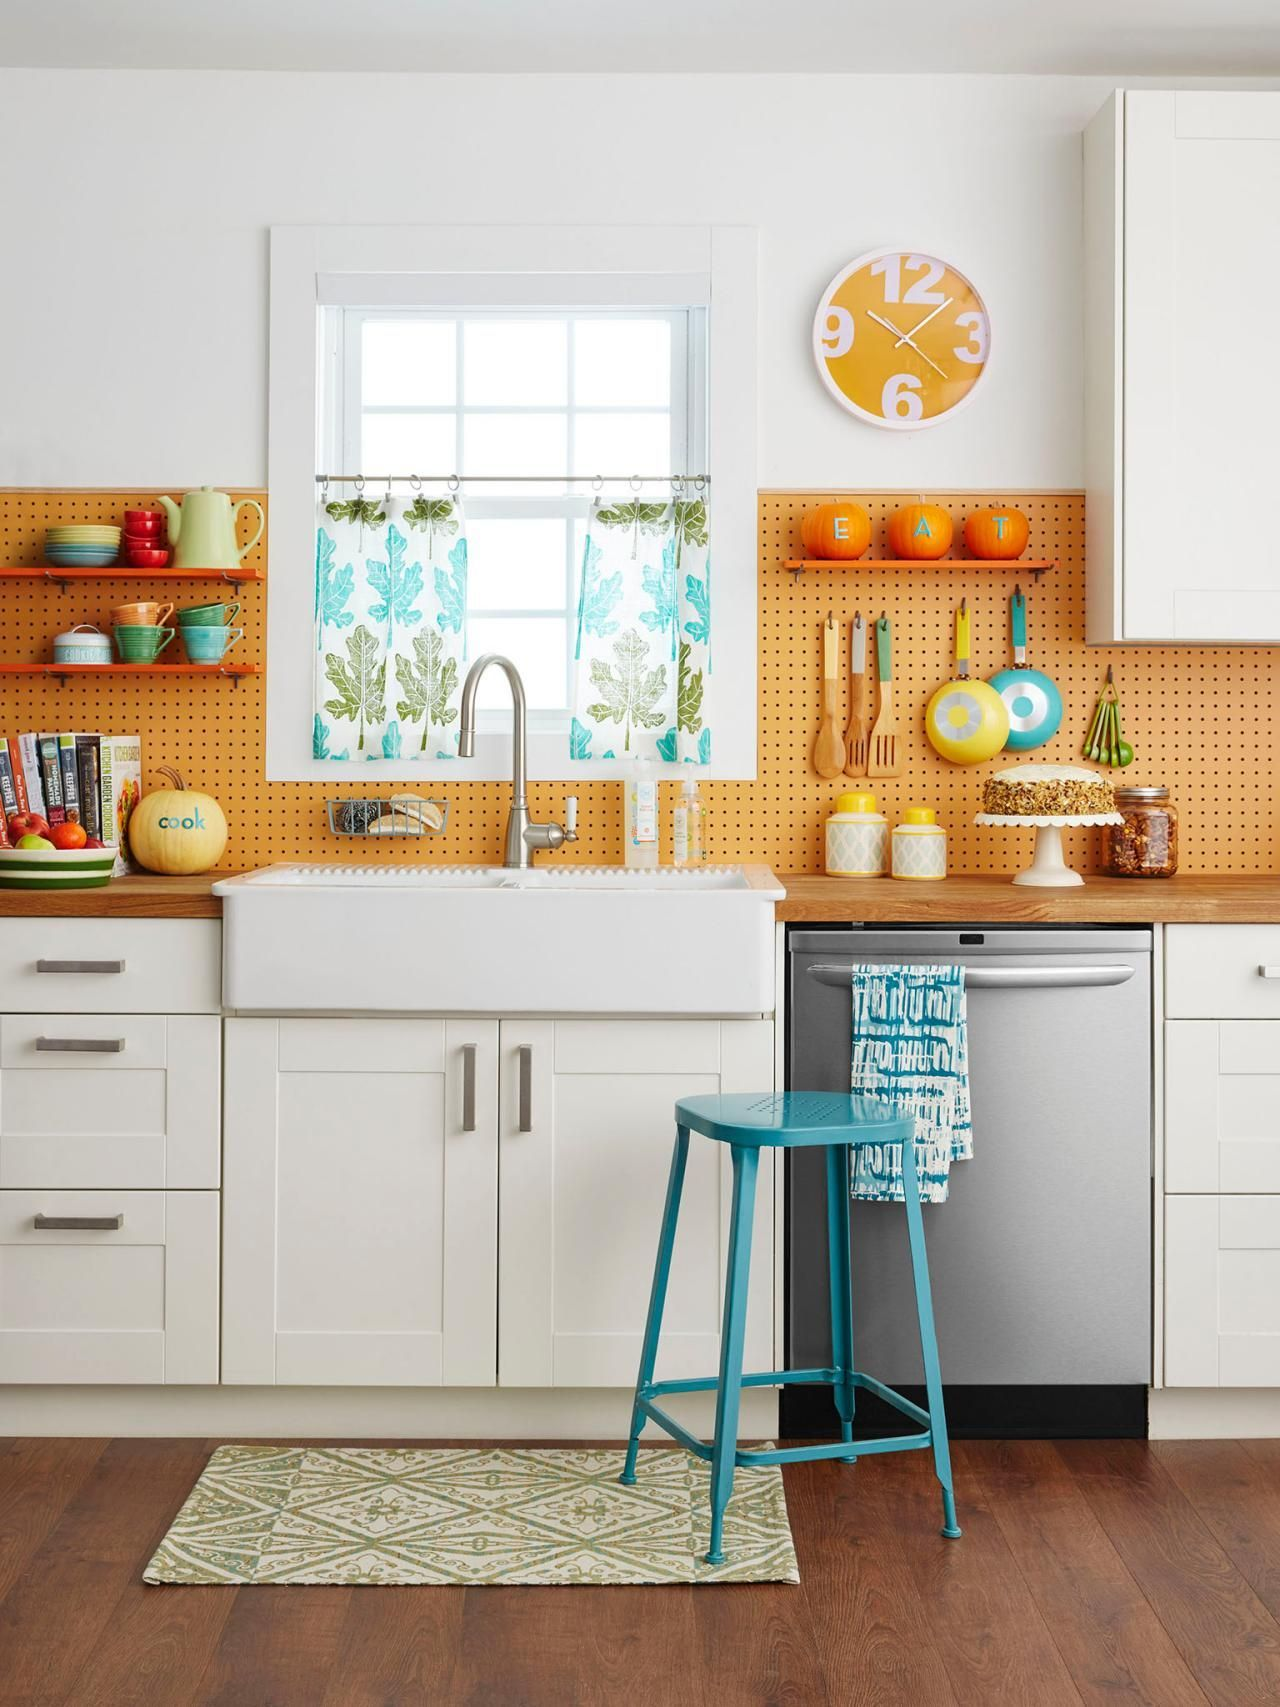 Best Country Kitchen Ideas and Decorations for Remodeling